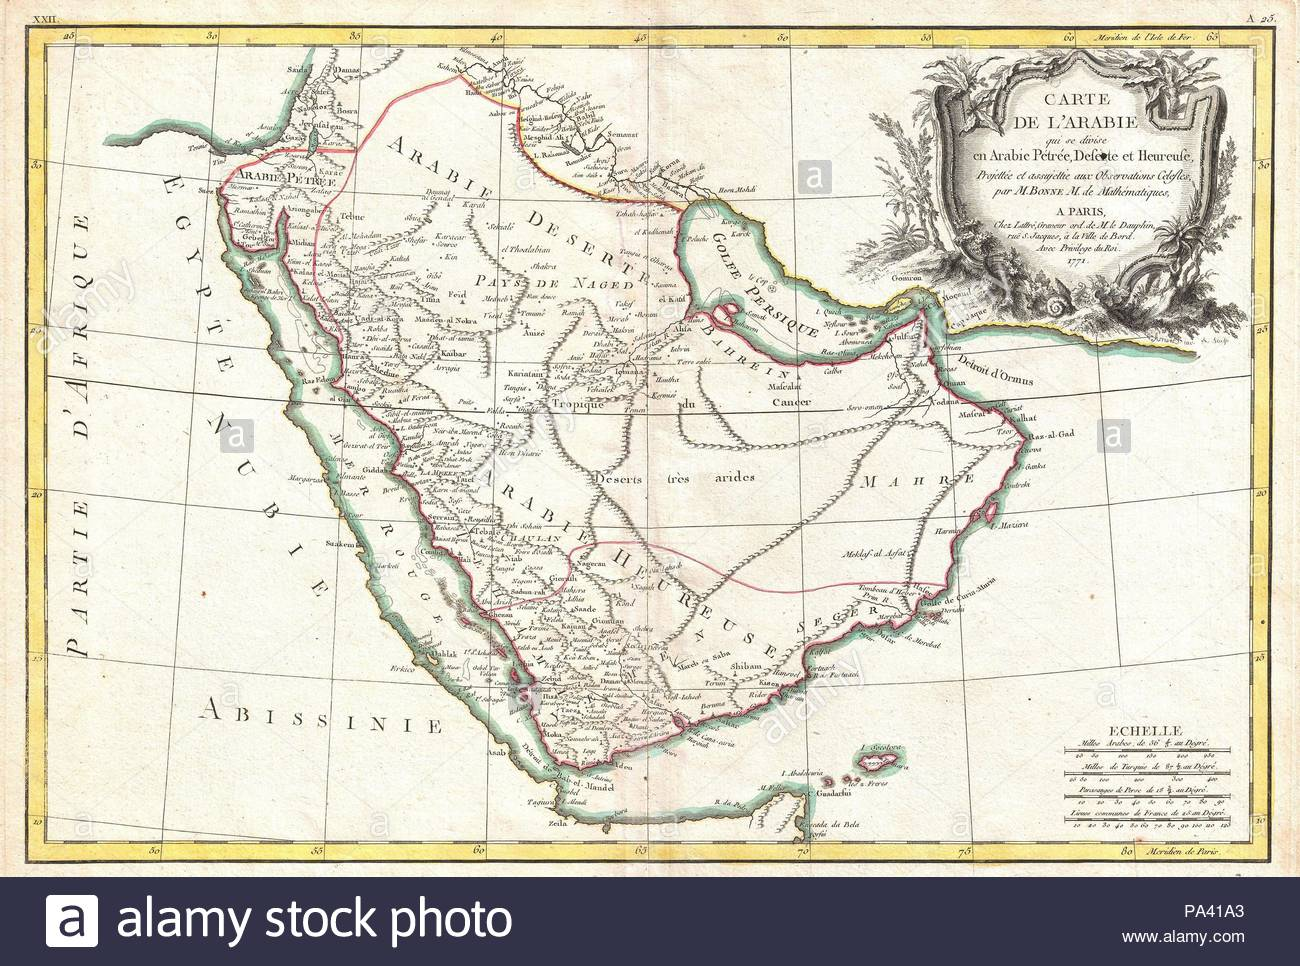 1771, Bonne Map of Arabia, Rigobert Bonne 1727 – 1794, one of the most important cartographers of the late 18th century. - Stock Image